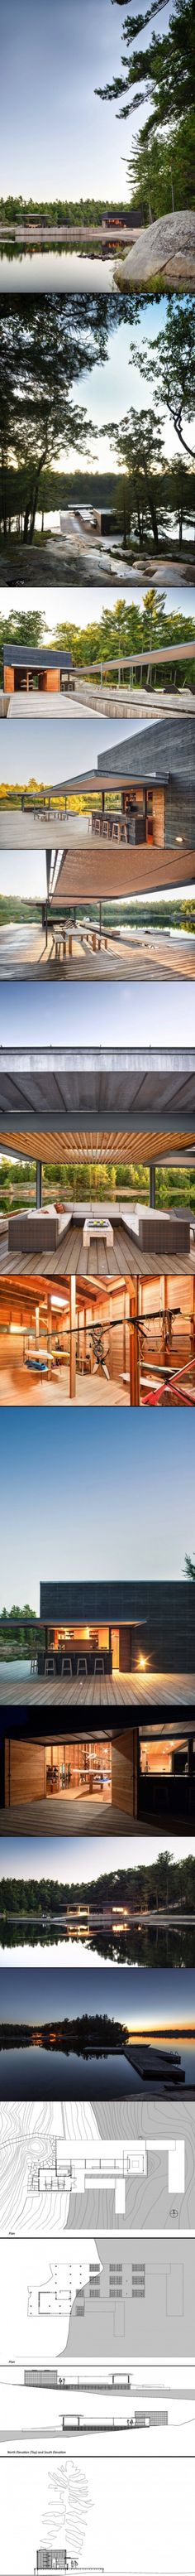 A Modern Boathouse by Weiss Architecture & Urbanism Limited / This modern boathouse was designed by Toronto-based Weiss Architecture and Urbanism for a family that enjoys water sports.  It is located on one of the many islands dotting The Archipelago in Georgian Bay, Ontario, Canada.